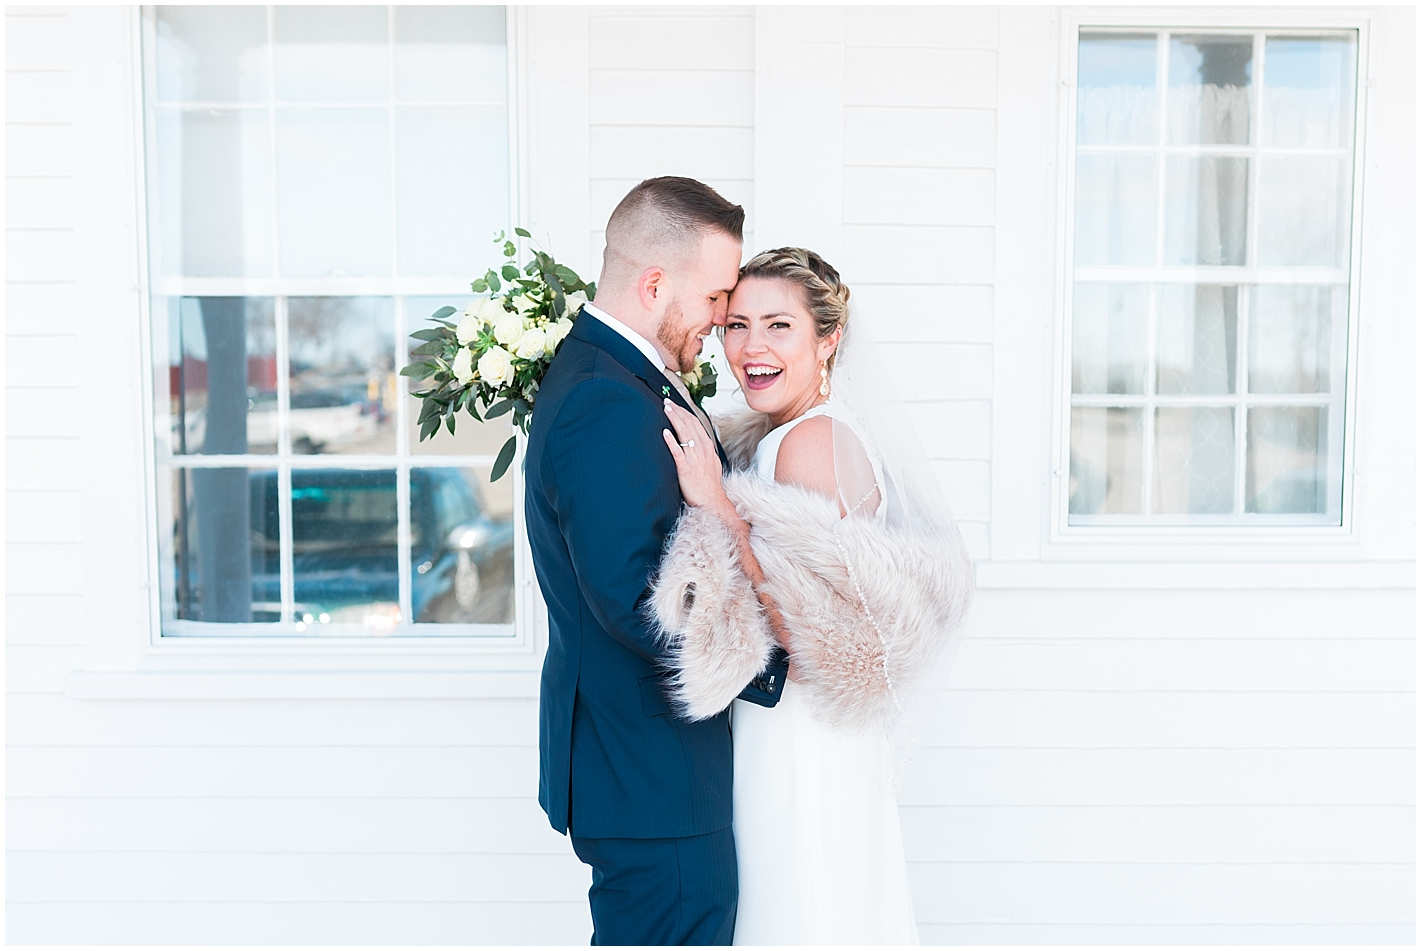 Happy bride and groom portraits  by Alyssa Parker Photography